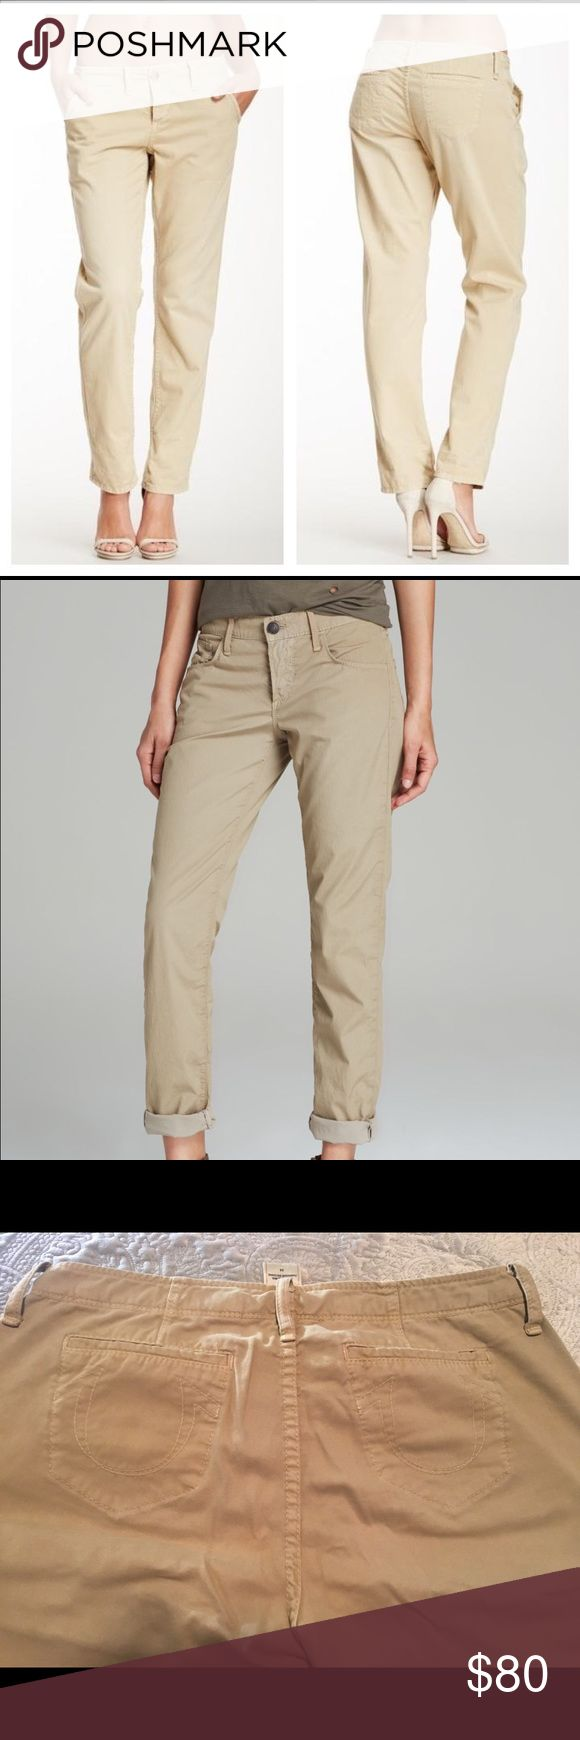 Women's True Religion boyfriend khaki Cargos 28 Like new ladies True Religion cargos, boyfriend pants style/fit. Size 28, great to dress up or down. Perfect condition, 100% Authentic. Ask any questions, and feel free to bundle for a discount 👗👙👚👘👖 True Religion Pants